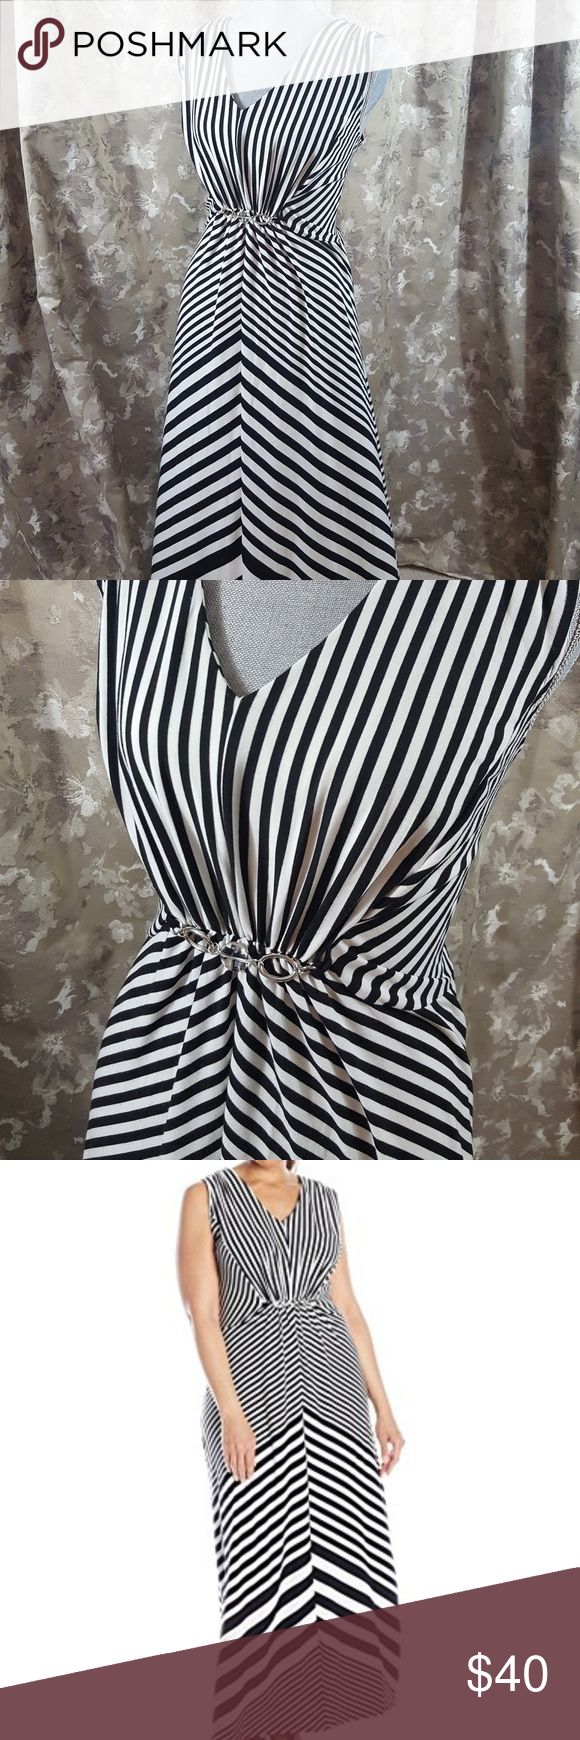 Notations Maxi dress NWOT MADE in Mexico . 76% polyester 20% rayon 4% spandex . Bundle to receive better deal FAST SHIPPING !!! Notations Dresses Maxi